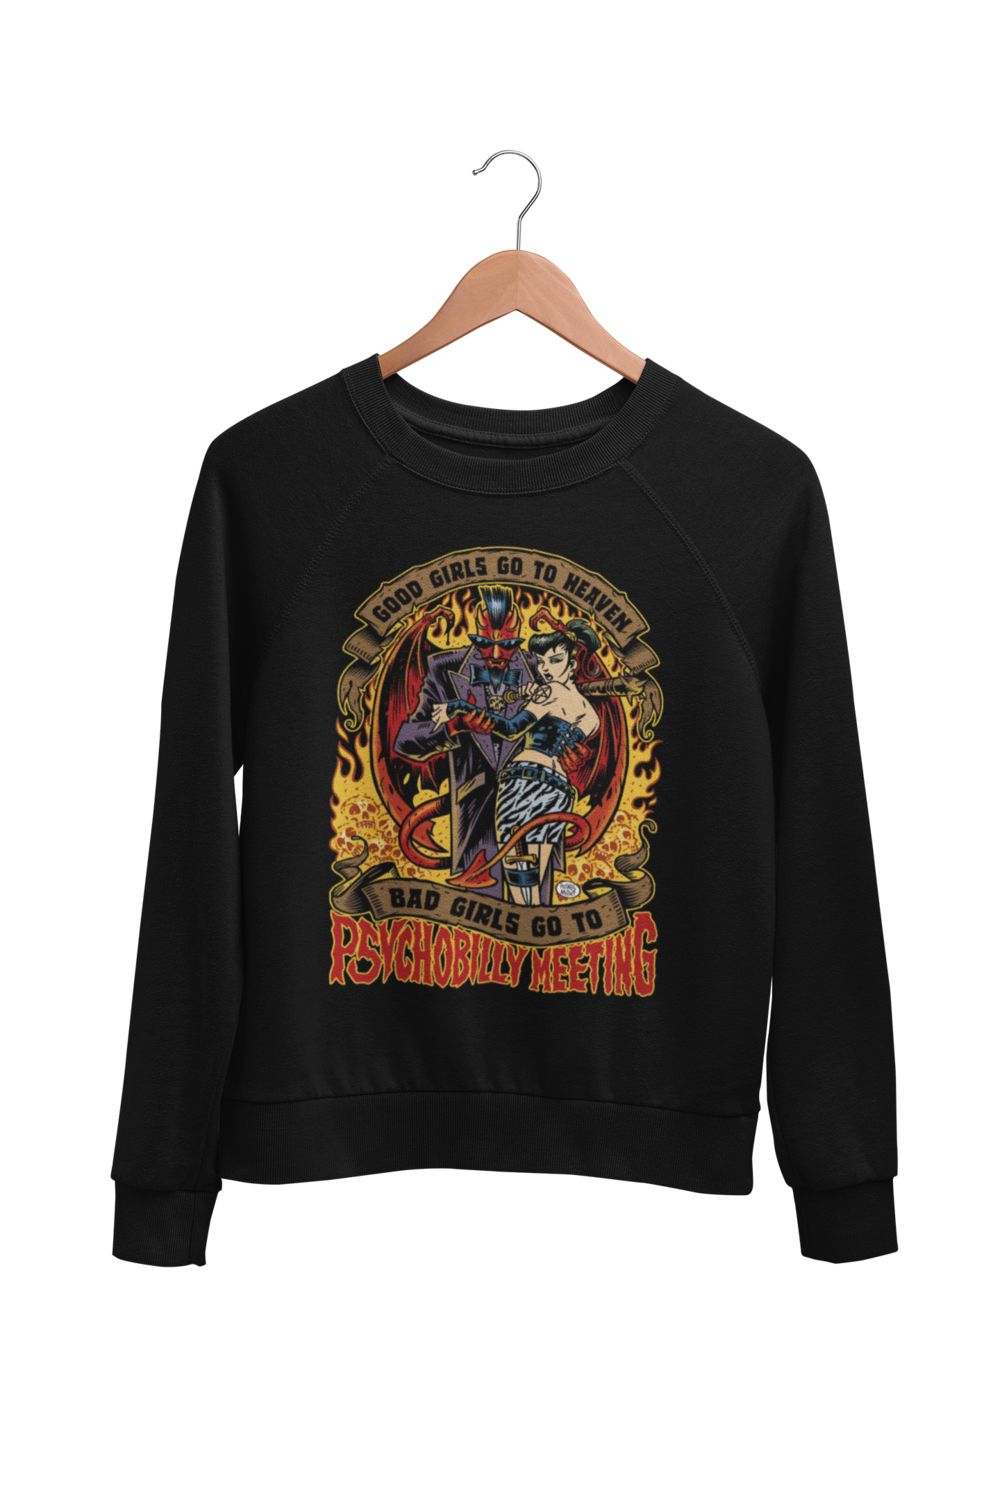 BAD GIRLS GO TO PSYCHOBILLY MEETIG SWEATSHIRT UNISEX by BY PASKAL